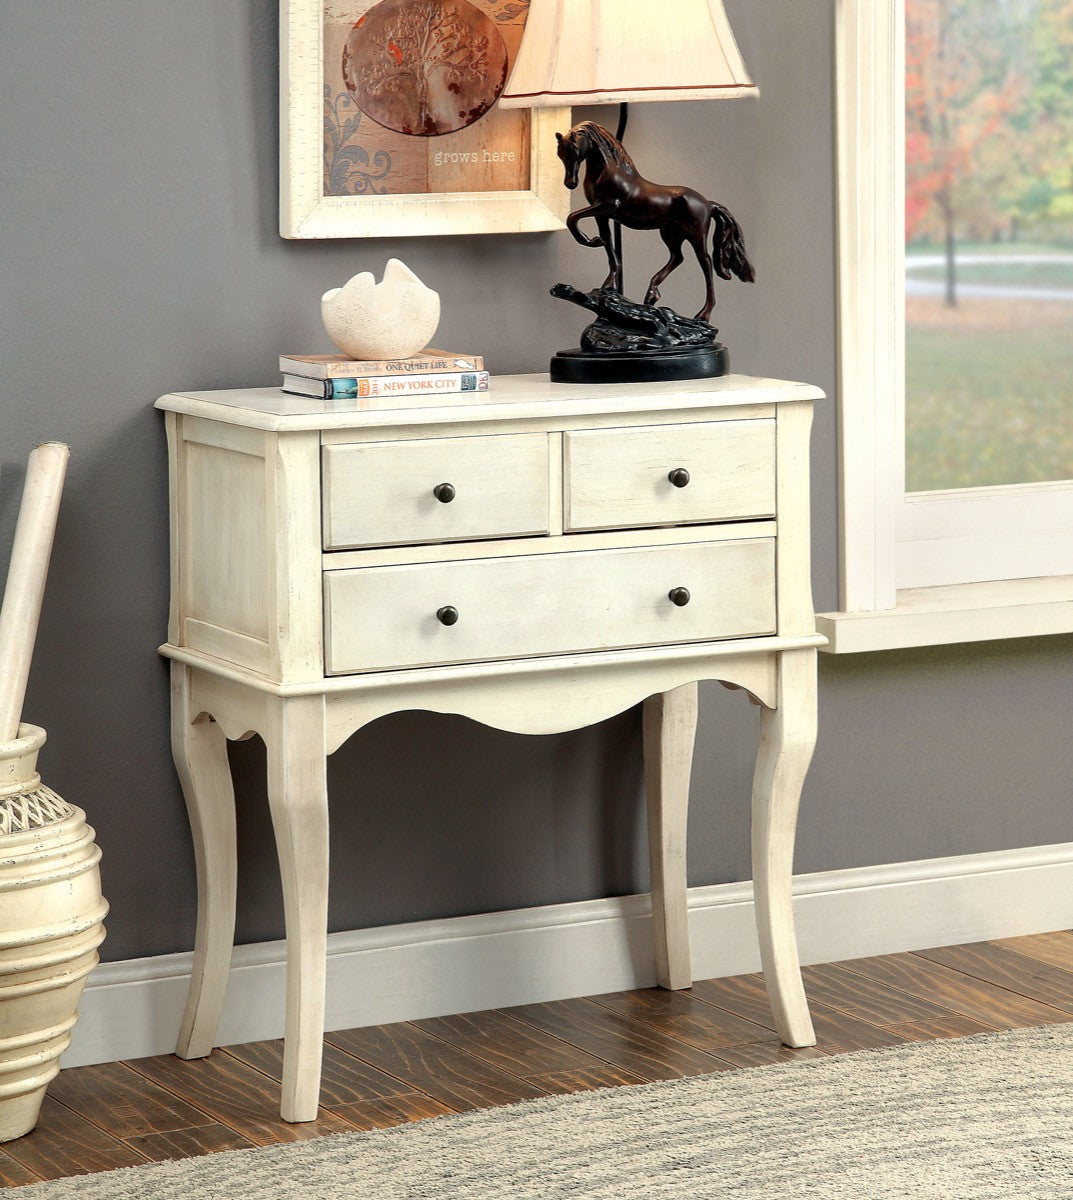 Furniture Of America Amino 3 Drawer Console Table Antique White Console  Tables HipBeds.